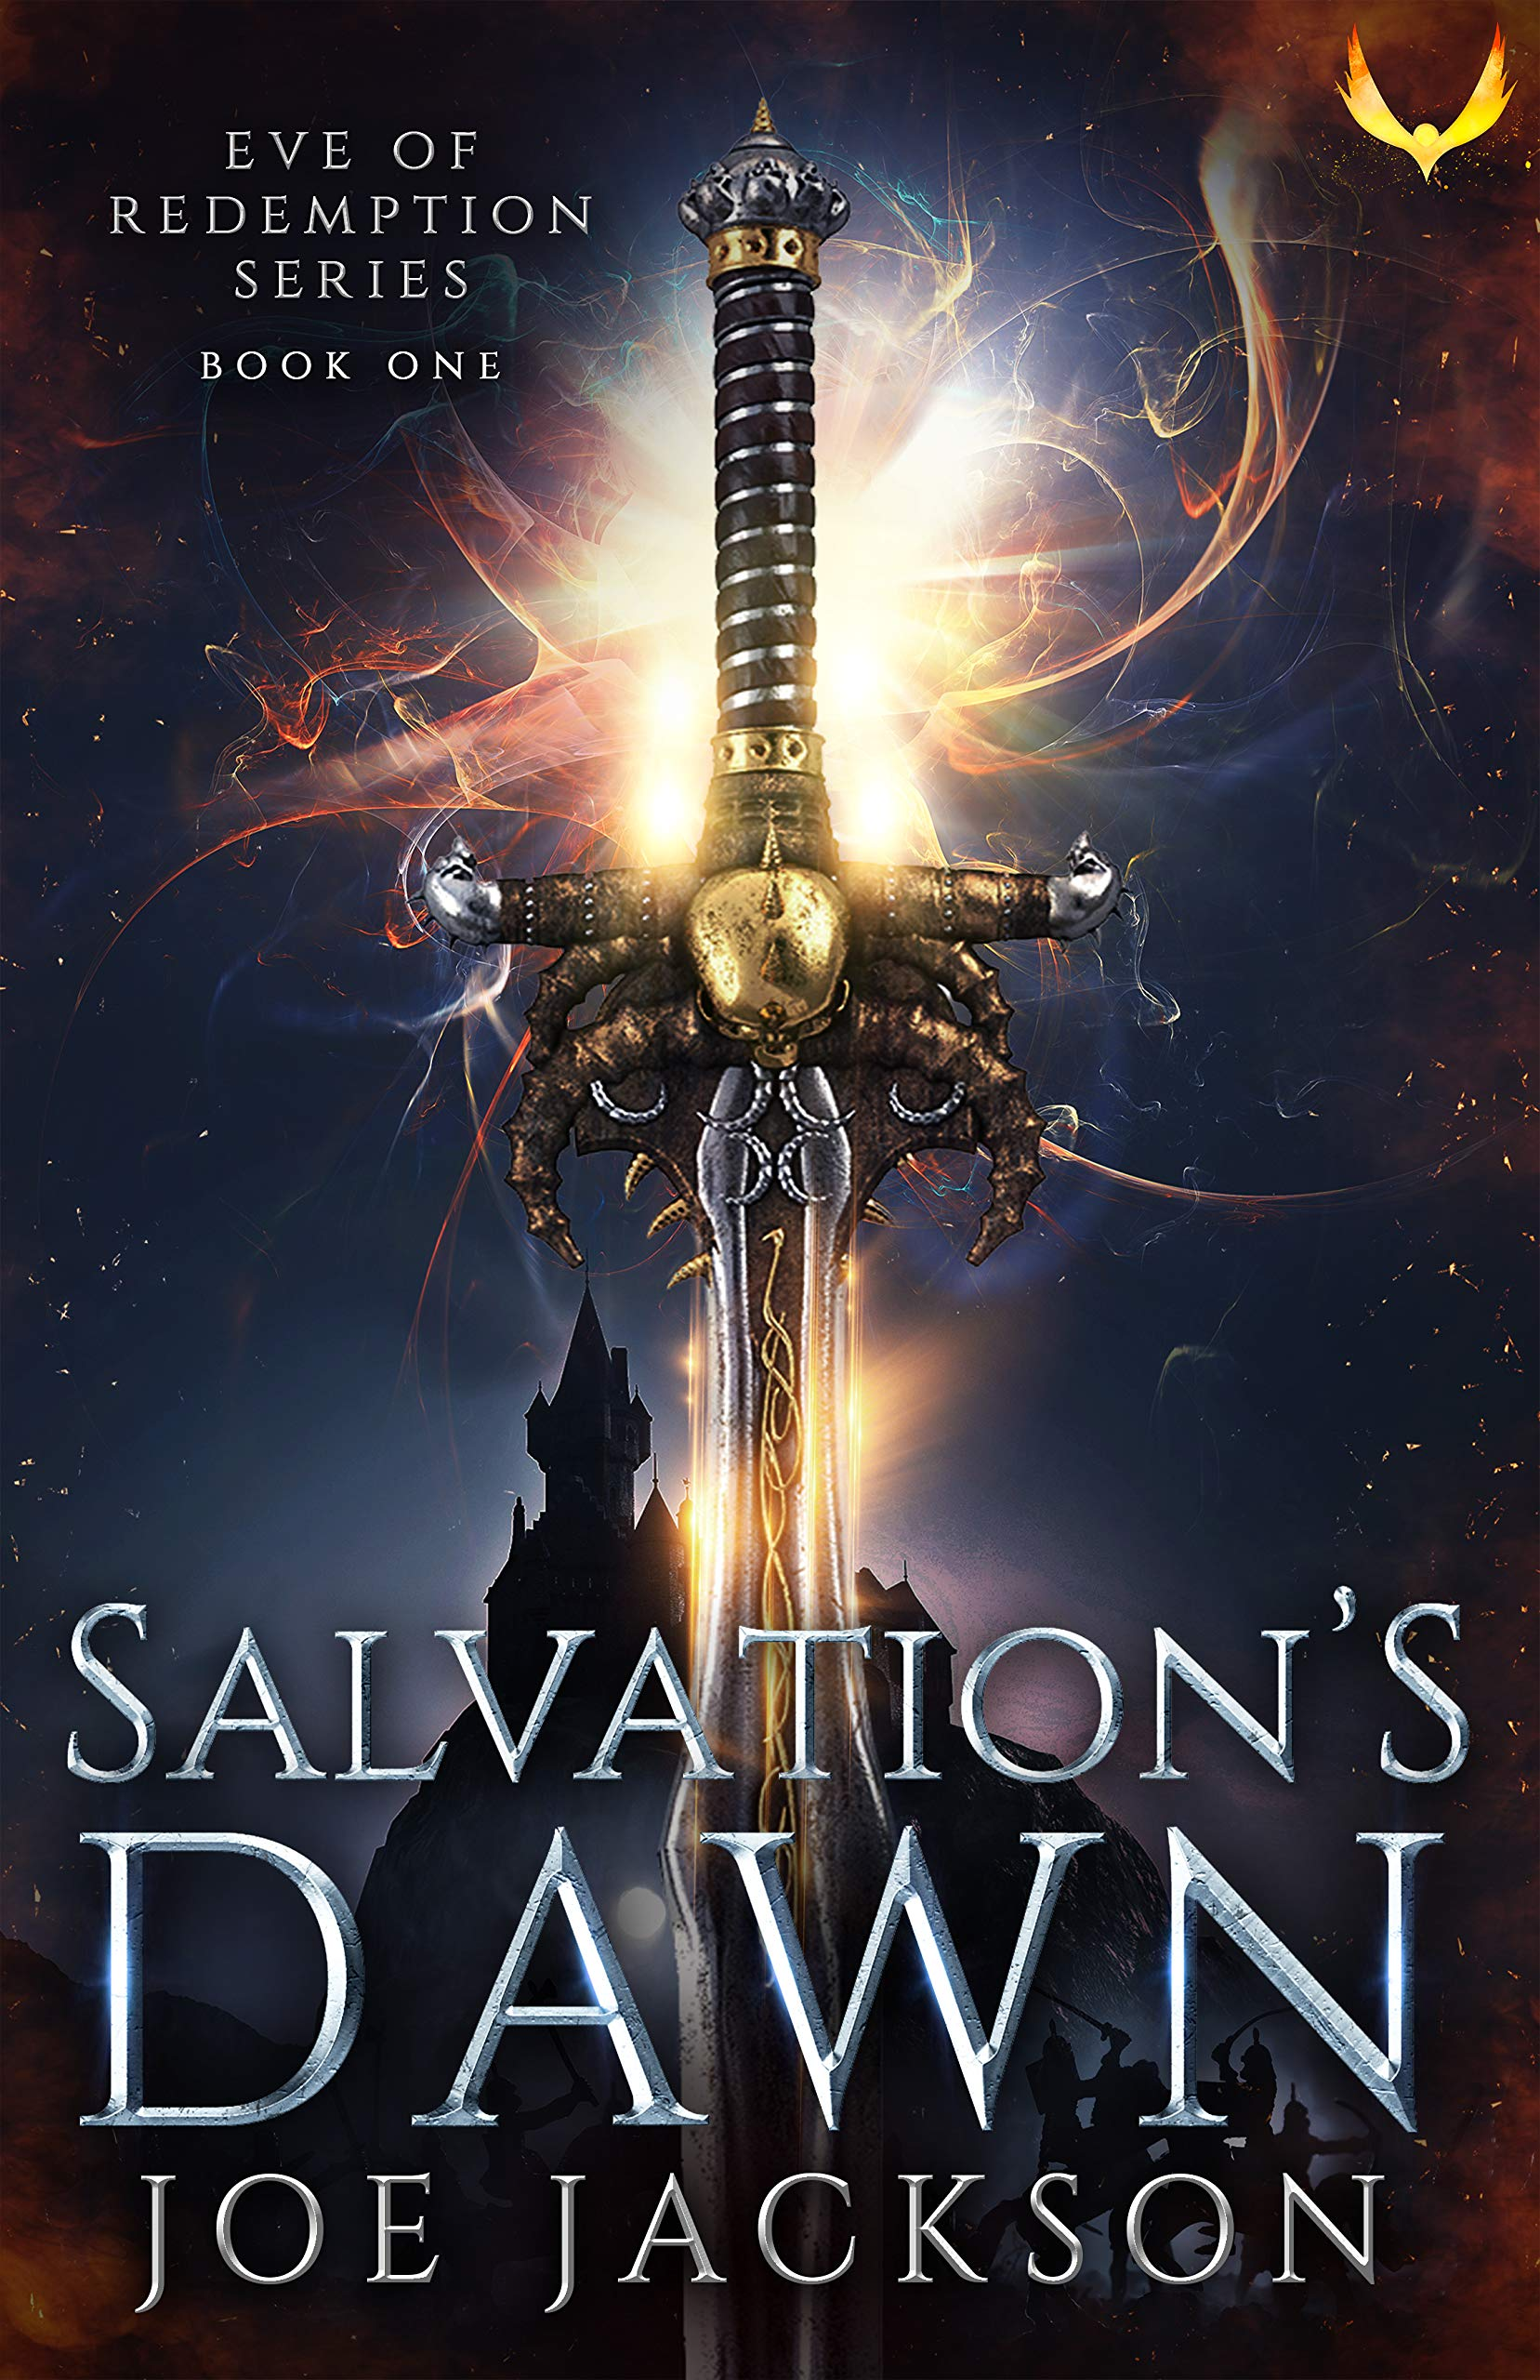 Salvation's Dawn: An Epic Fantasy Saga (Eve of Redemption Book 1)